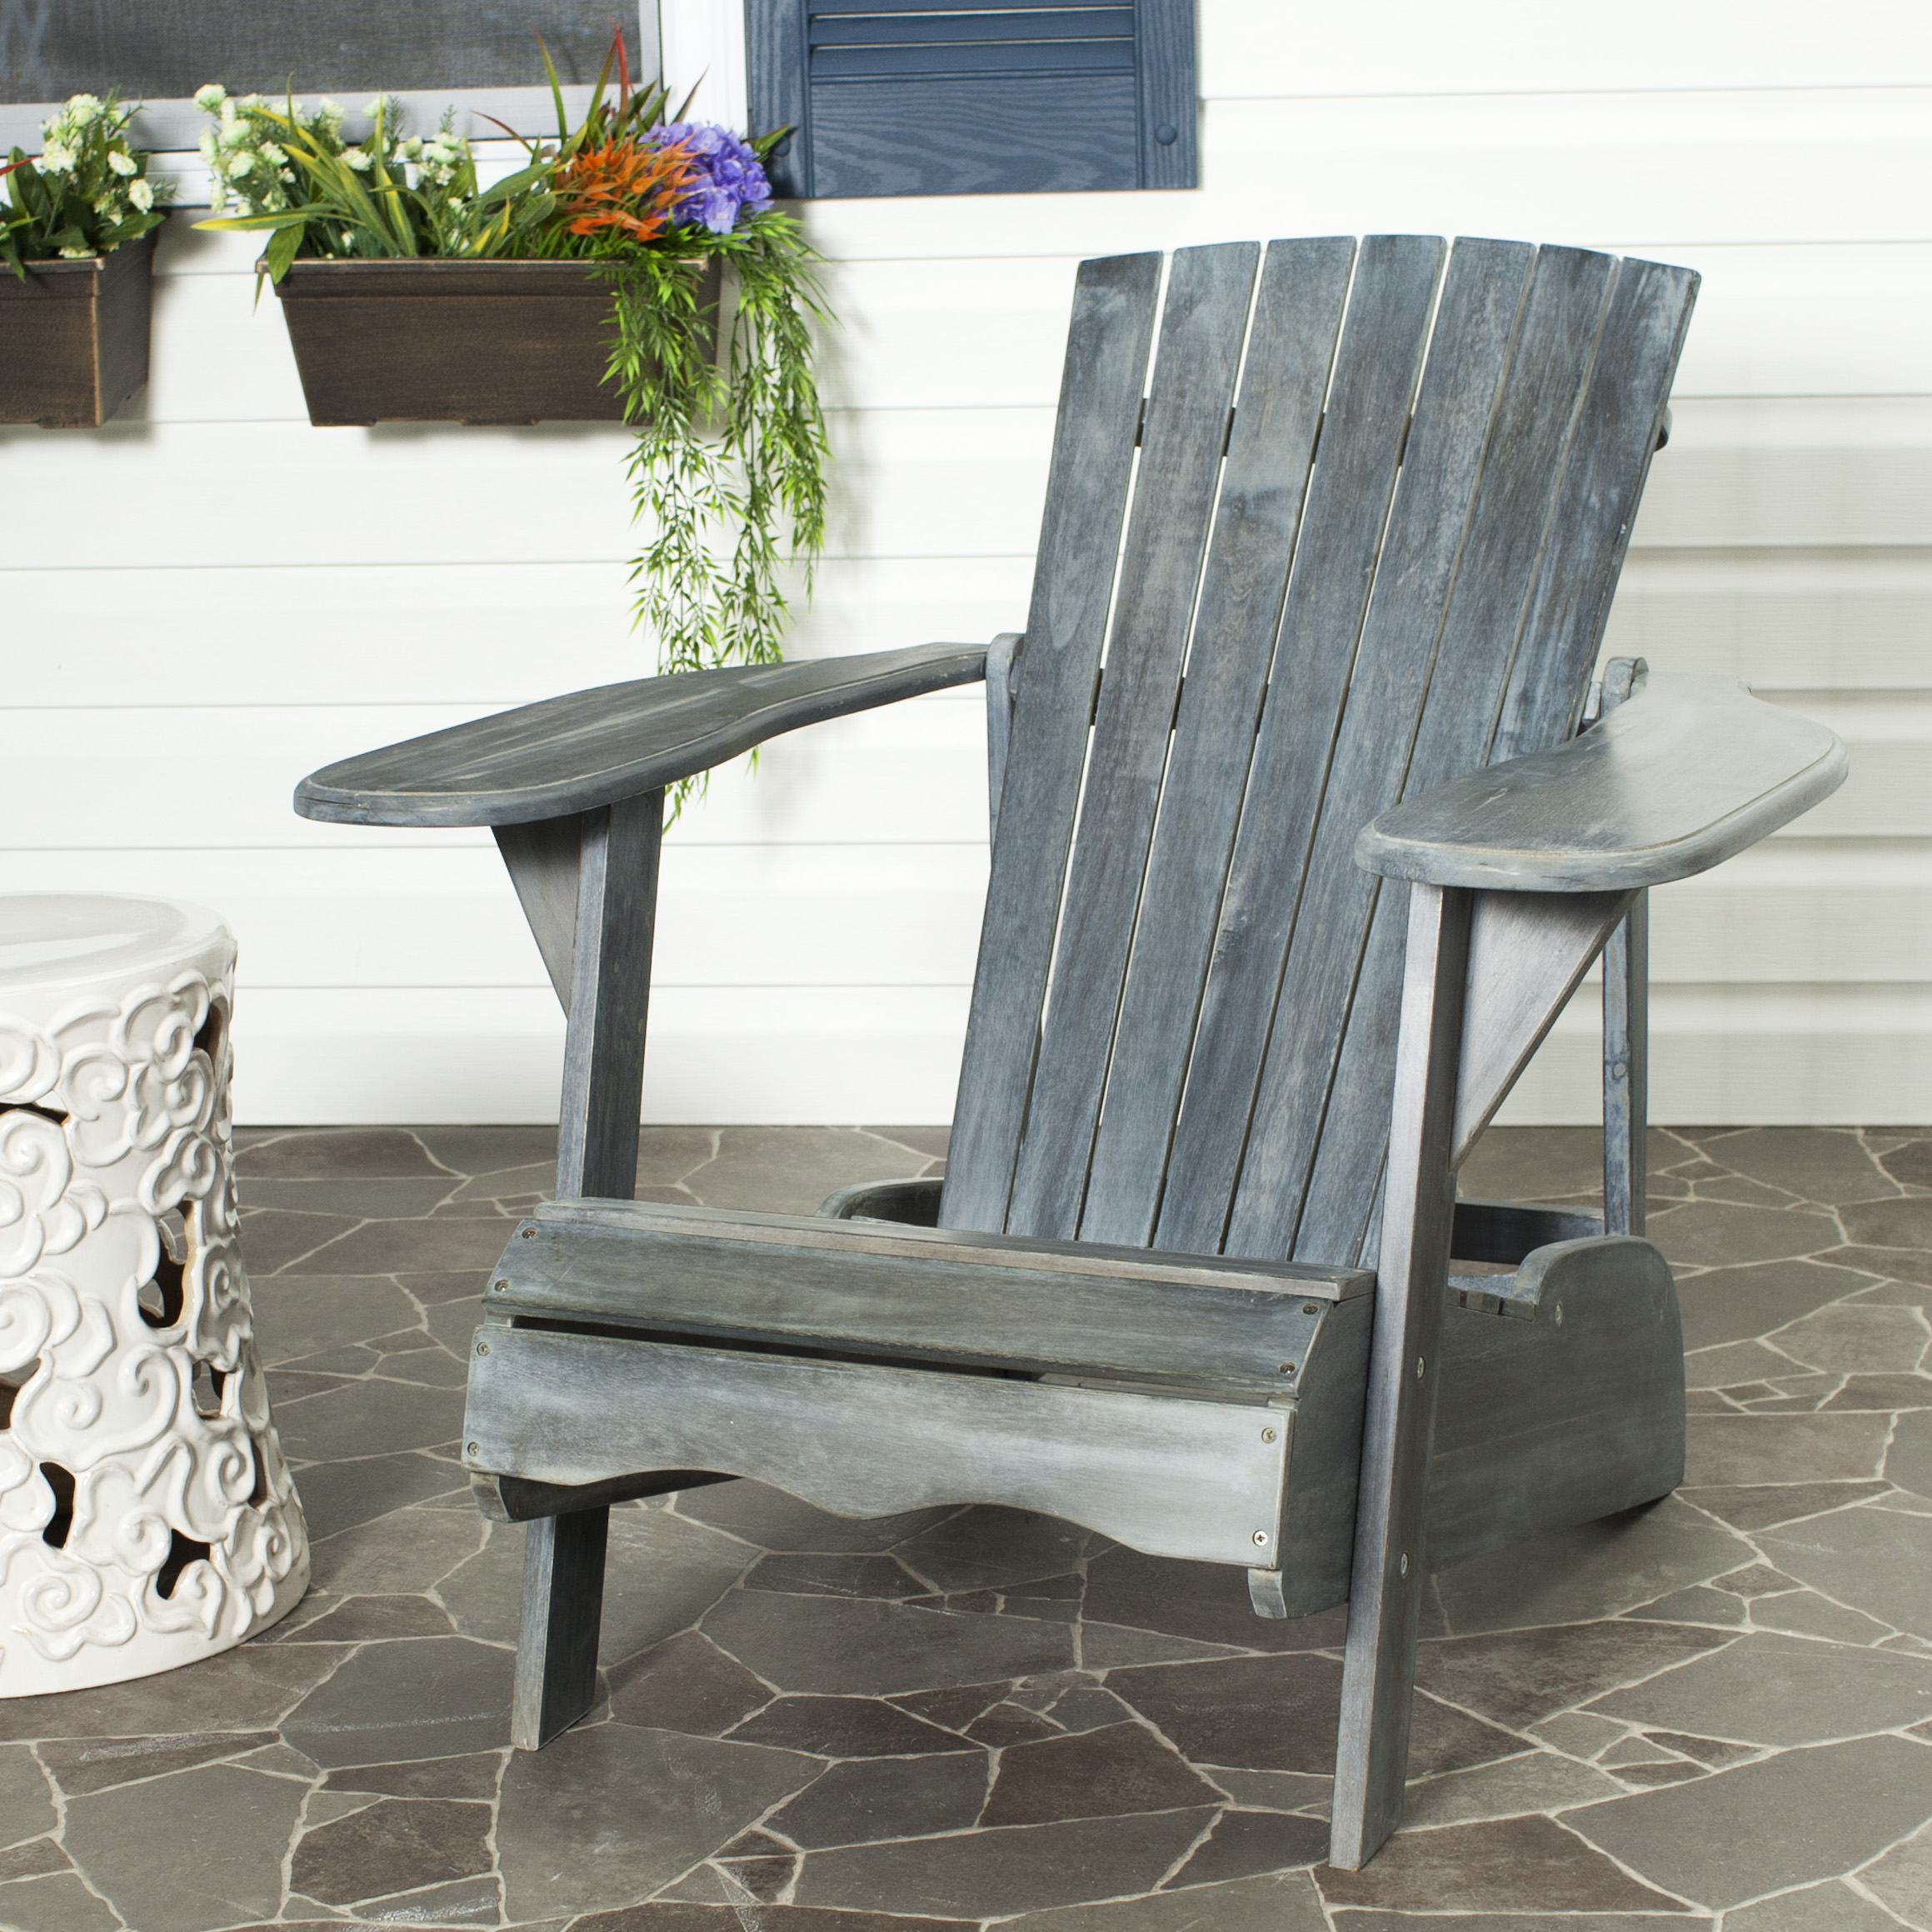 Safavieh Mopani Outdoor Contemporary Adirondack Chair